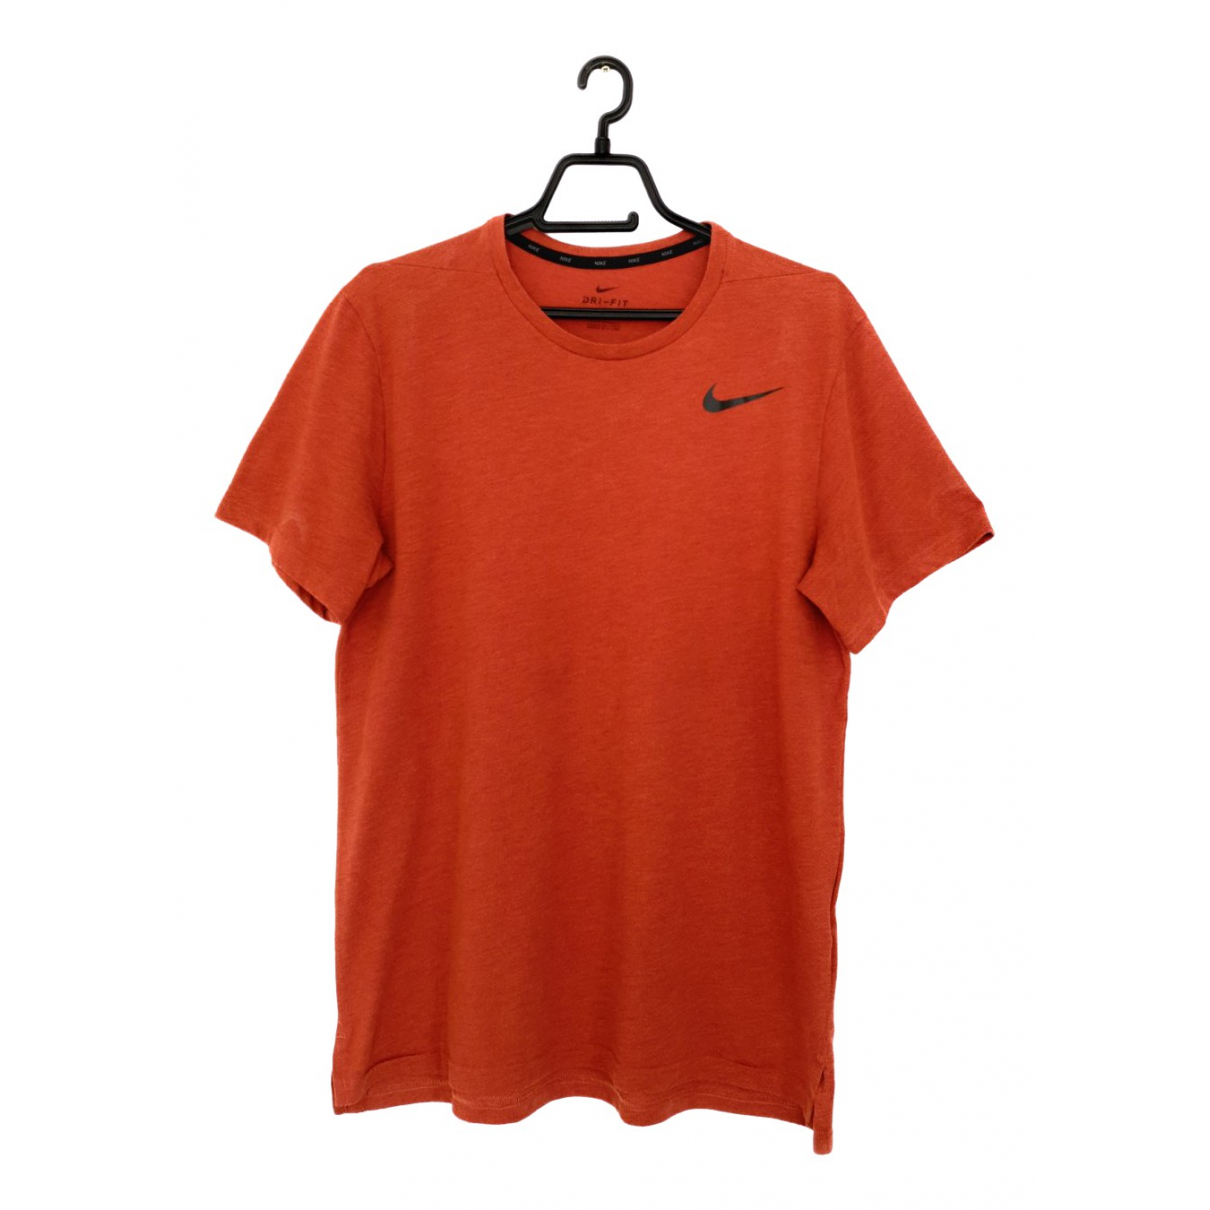 Nike \N Orange Cotton T-shirts for Men L International